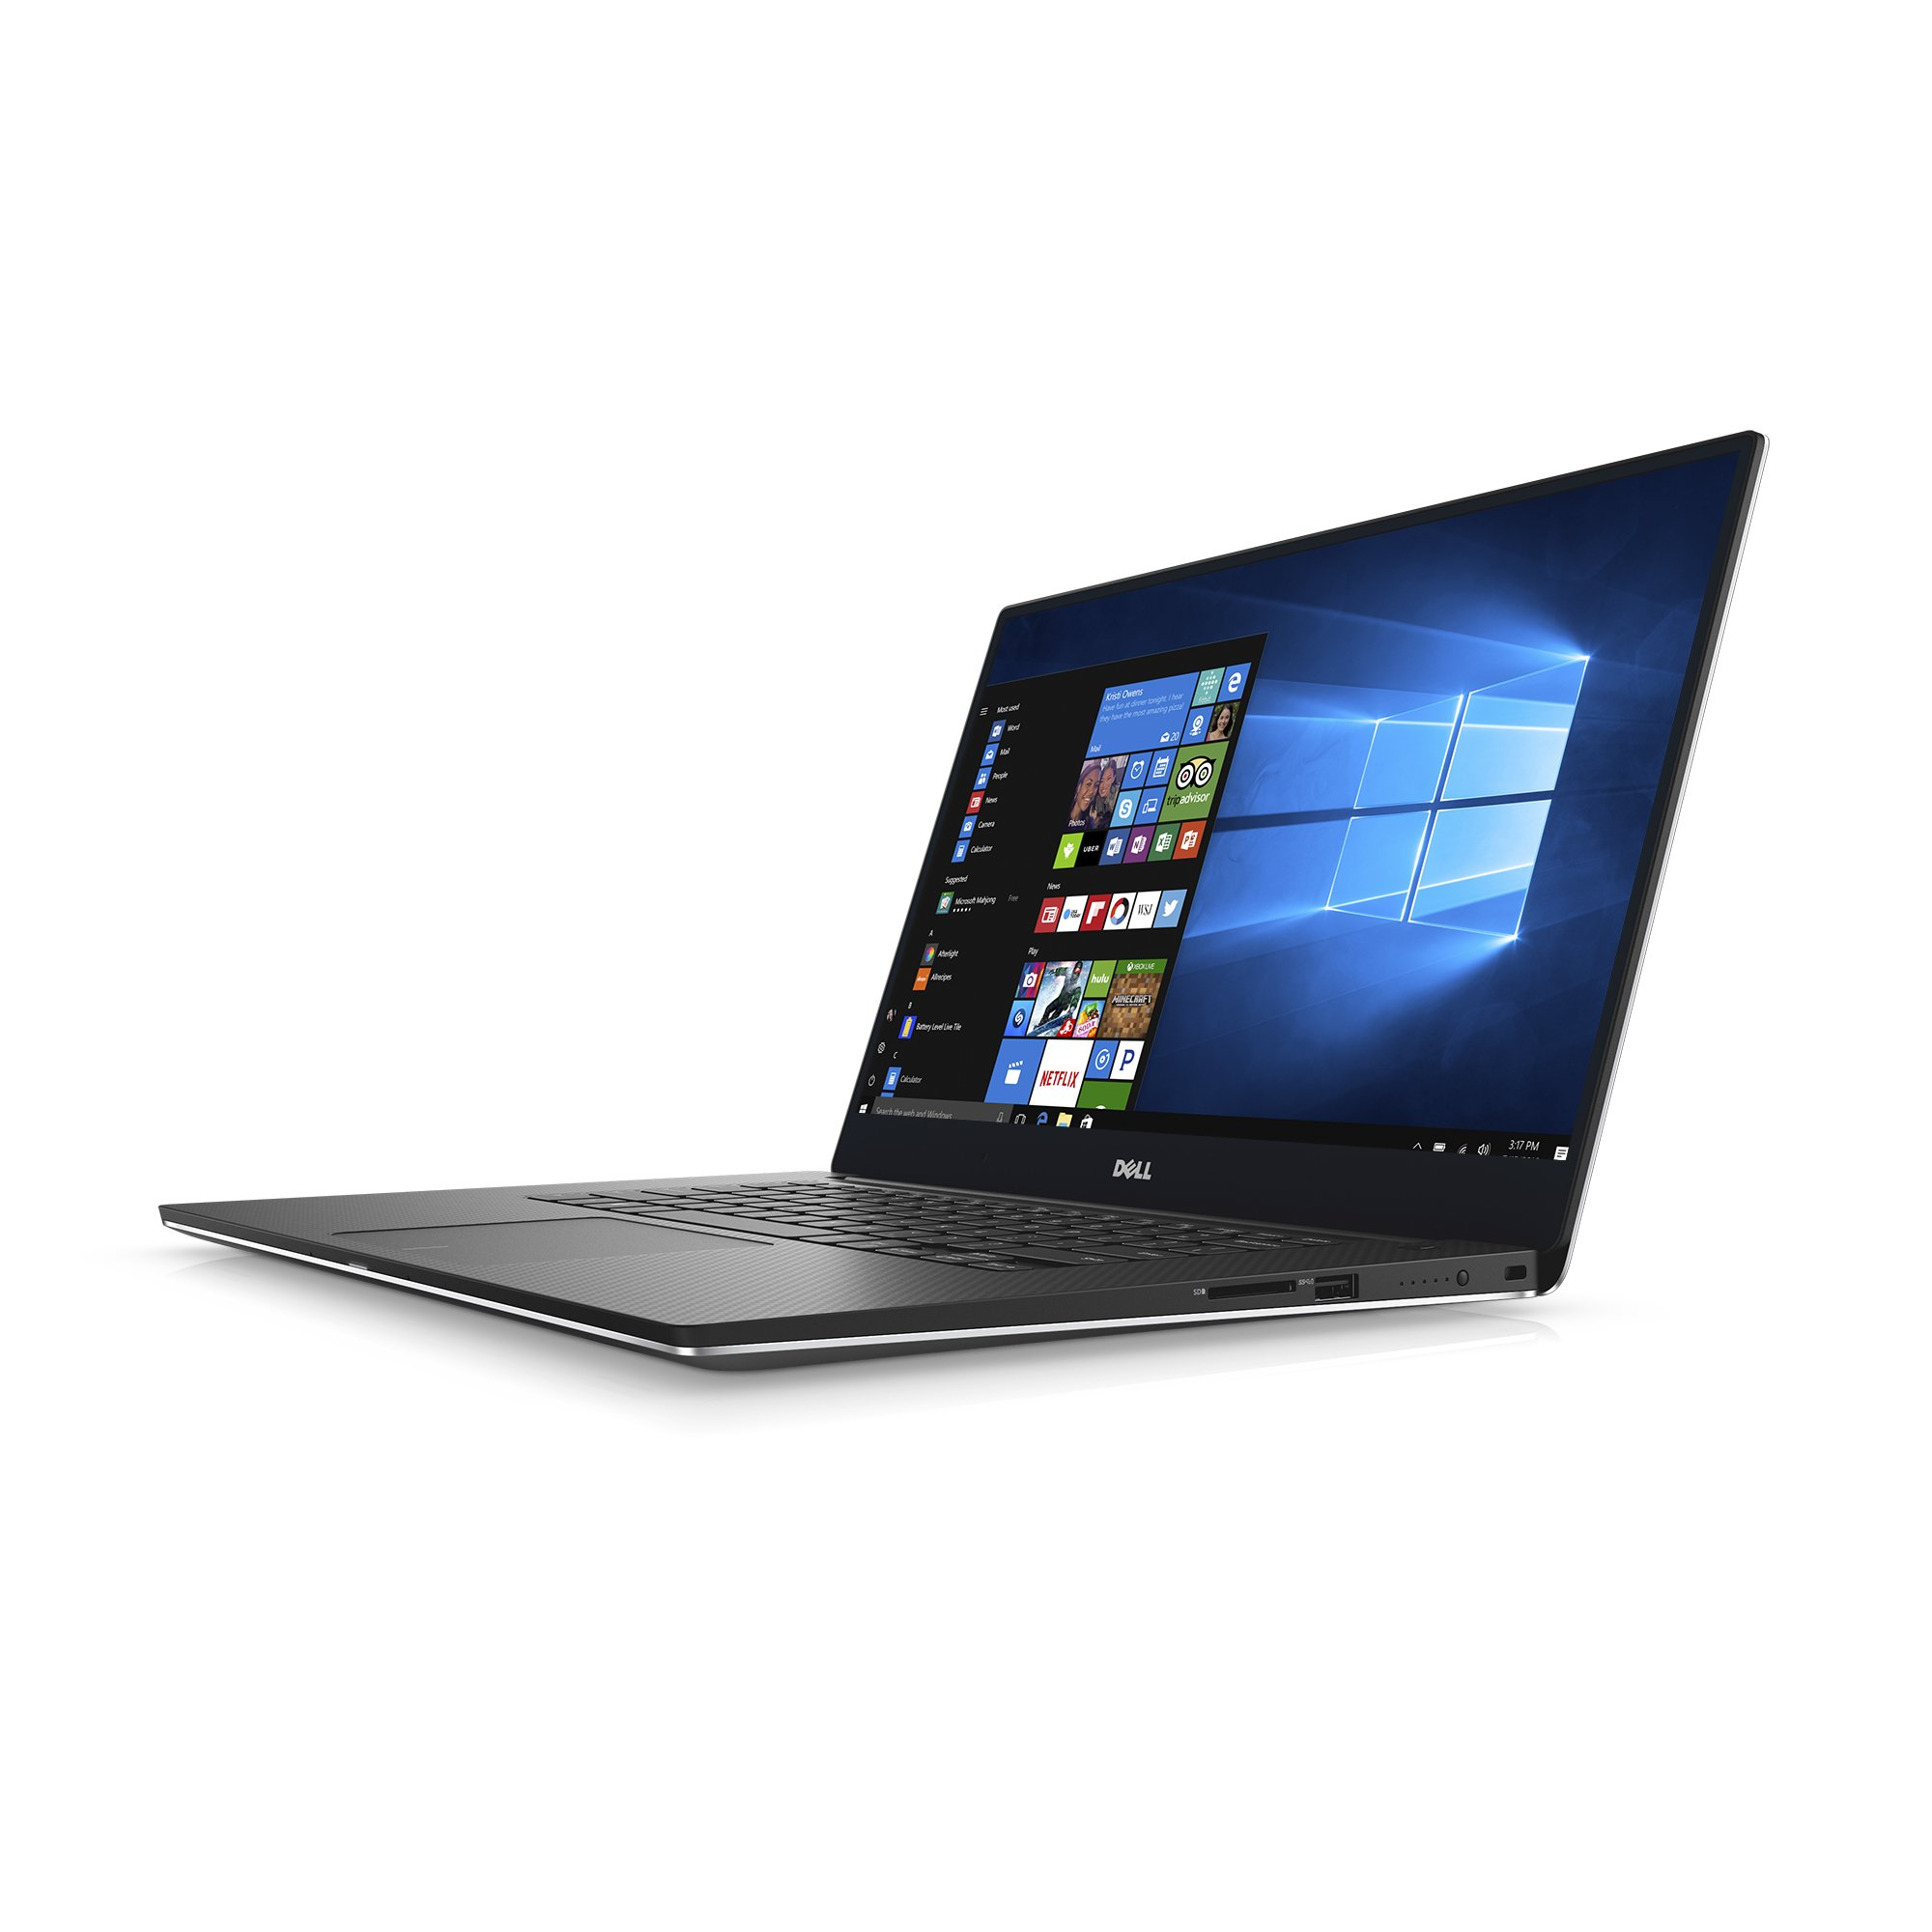 Dell XPS9560-7001SLV-PUS 15.6'' Ultra Thin and Light Laptop with 4K touch screen display, 7th Gen Core i7 (up to 3.8 GHz), 16GB, 512GB SSD, Nvidia Gaming GPU GTX 1050, Aluminum Chassis